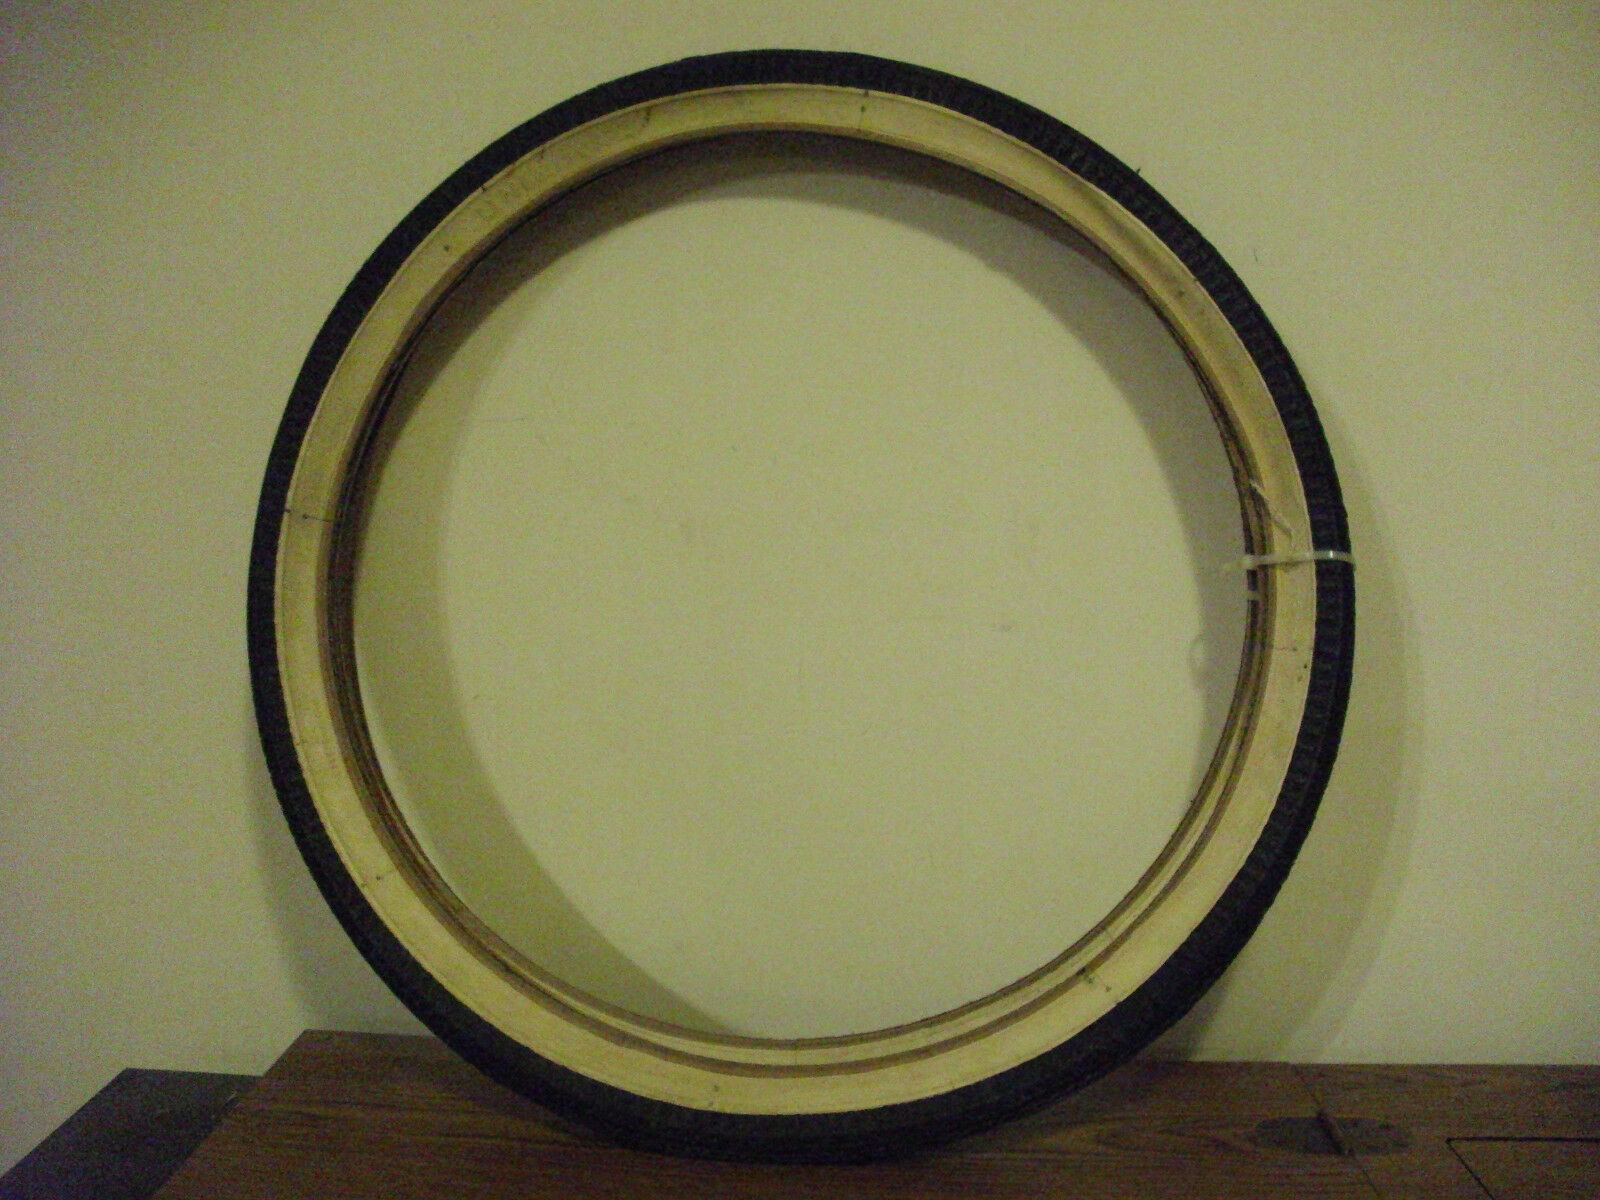 2 NOS Uniroyal Airflight 24x1 3 4 Tires...S-7 Rim...Schwinn..USA..Trusted Seller